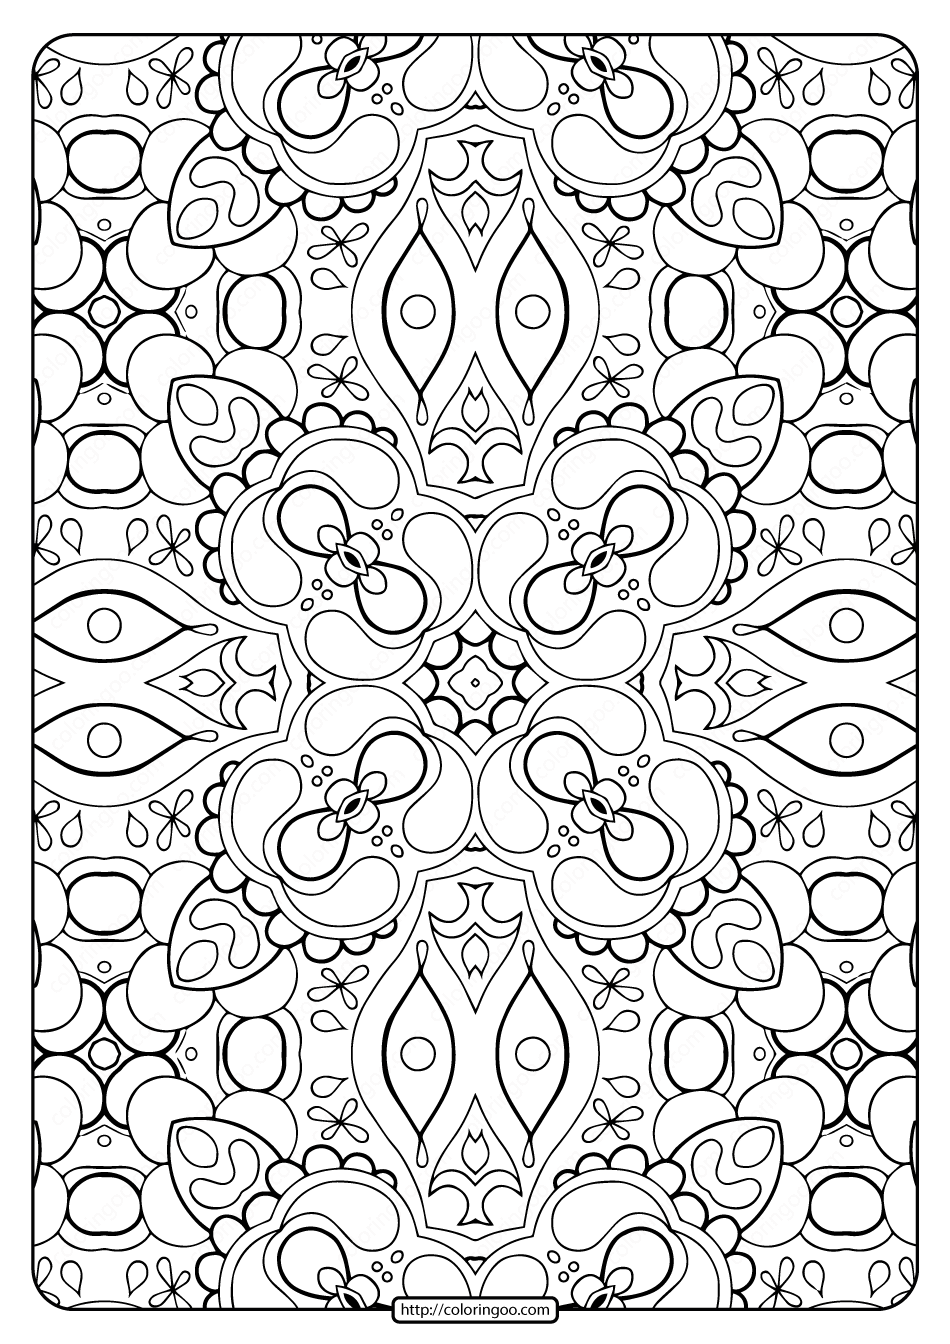 patterns to color in free printable geometric coloring pages for kids color patterns to in